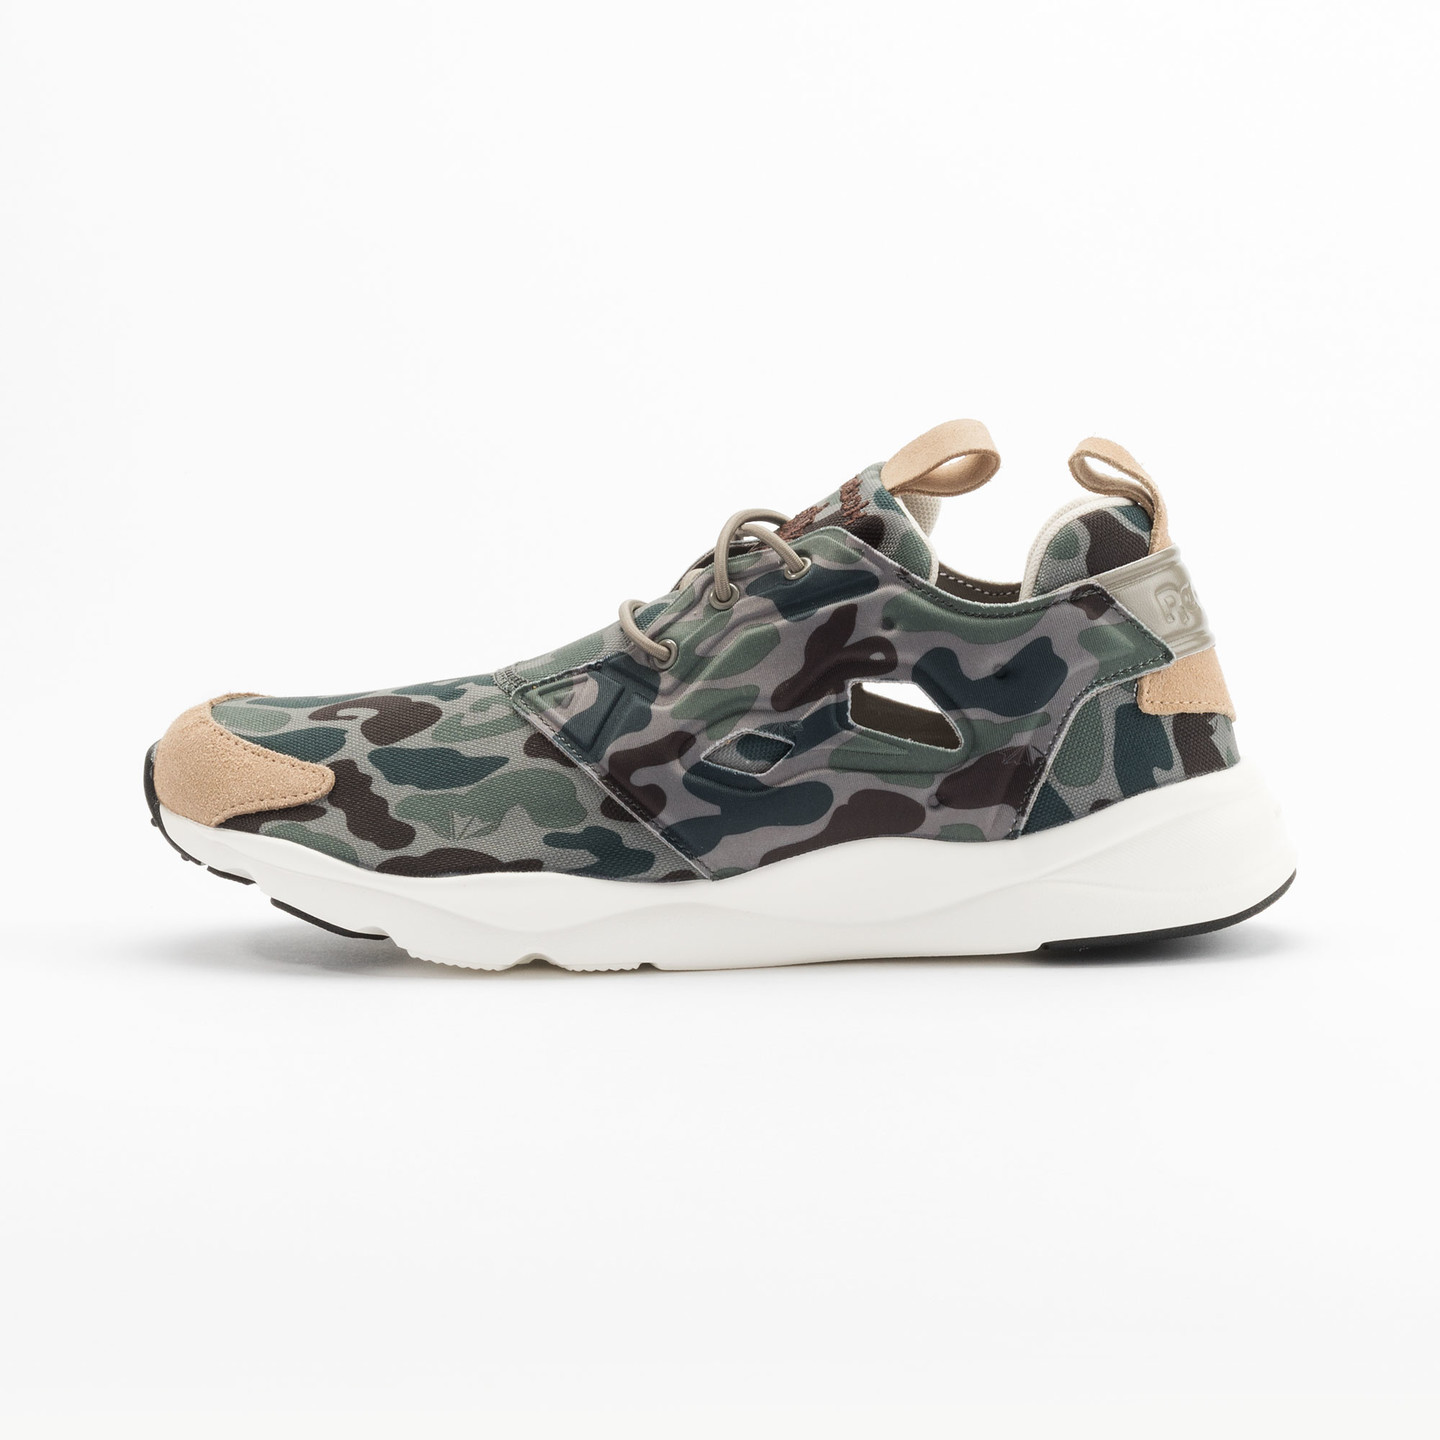 Reebok Furylite Camo Cement / Silvery Green / Sage V67089-41